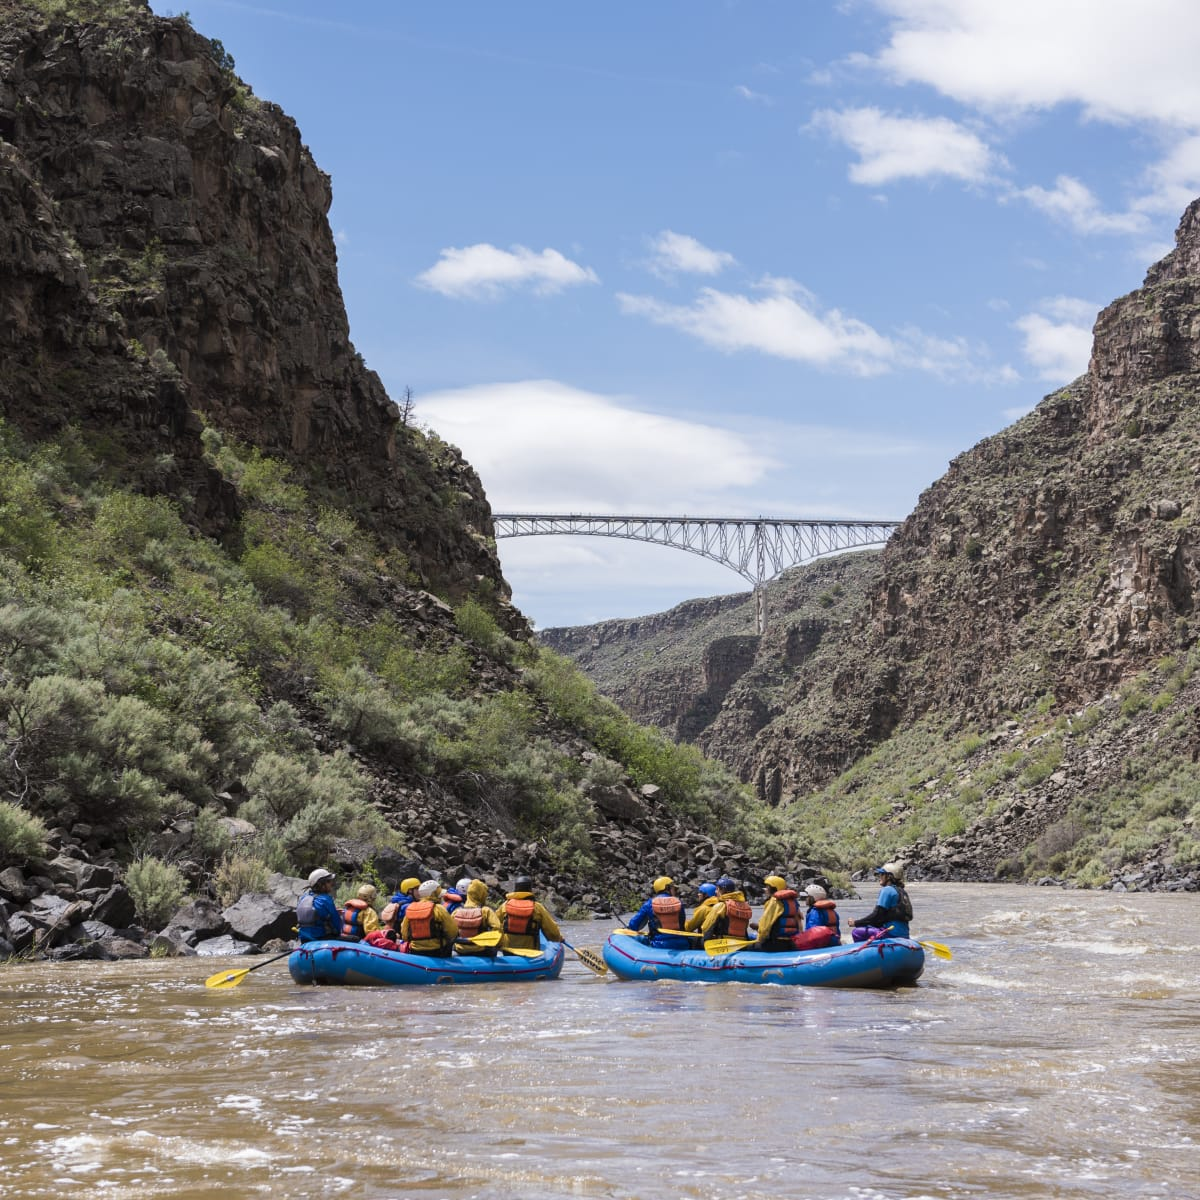 White water rafting in the Rio Grande